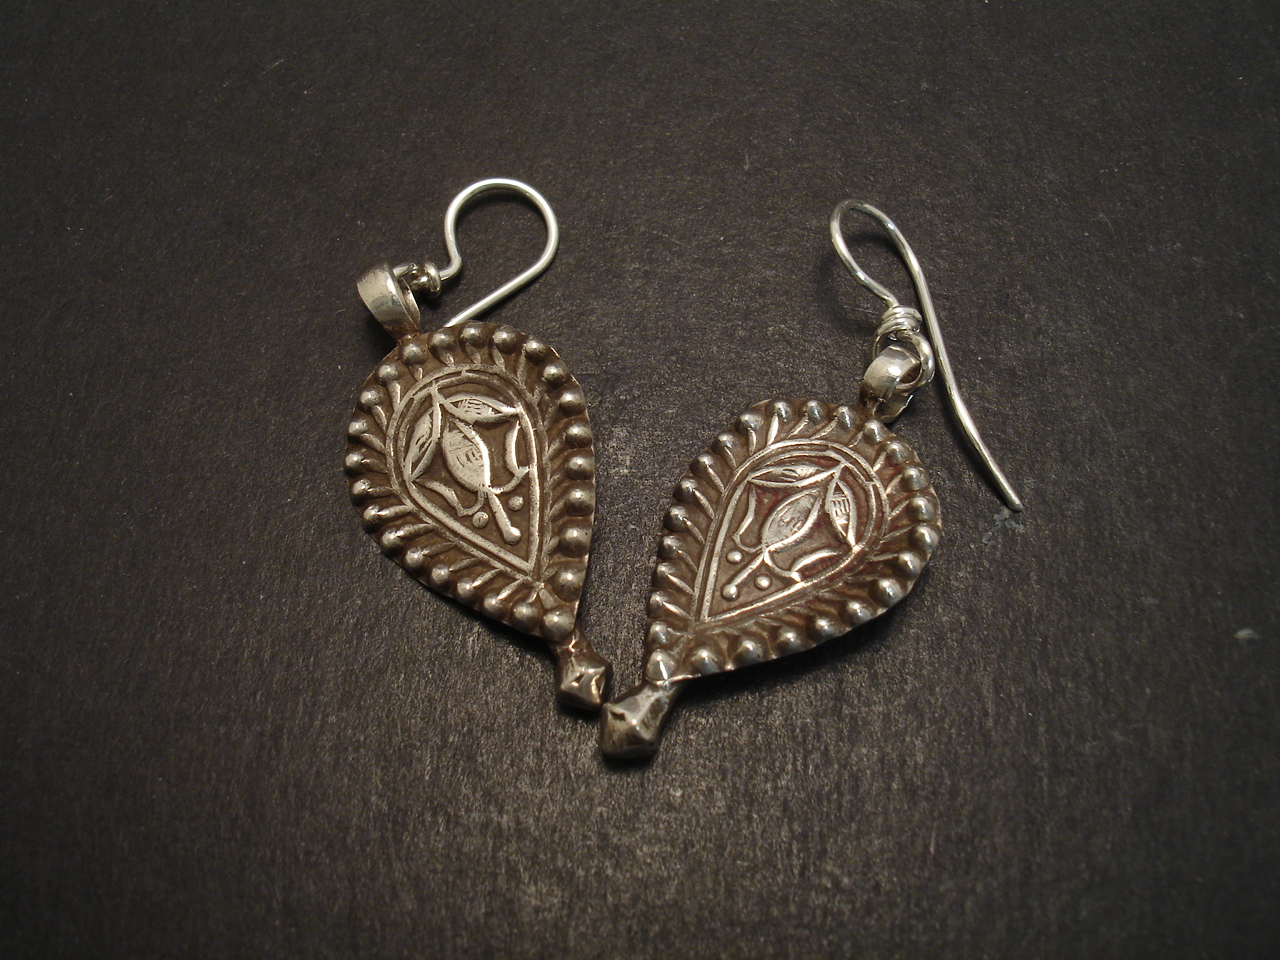 Tribal afghani silver pendants as earrings christopher william tribal afghani silver pendants earrings 08596g mozeypictures Gallery